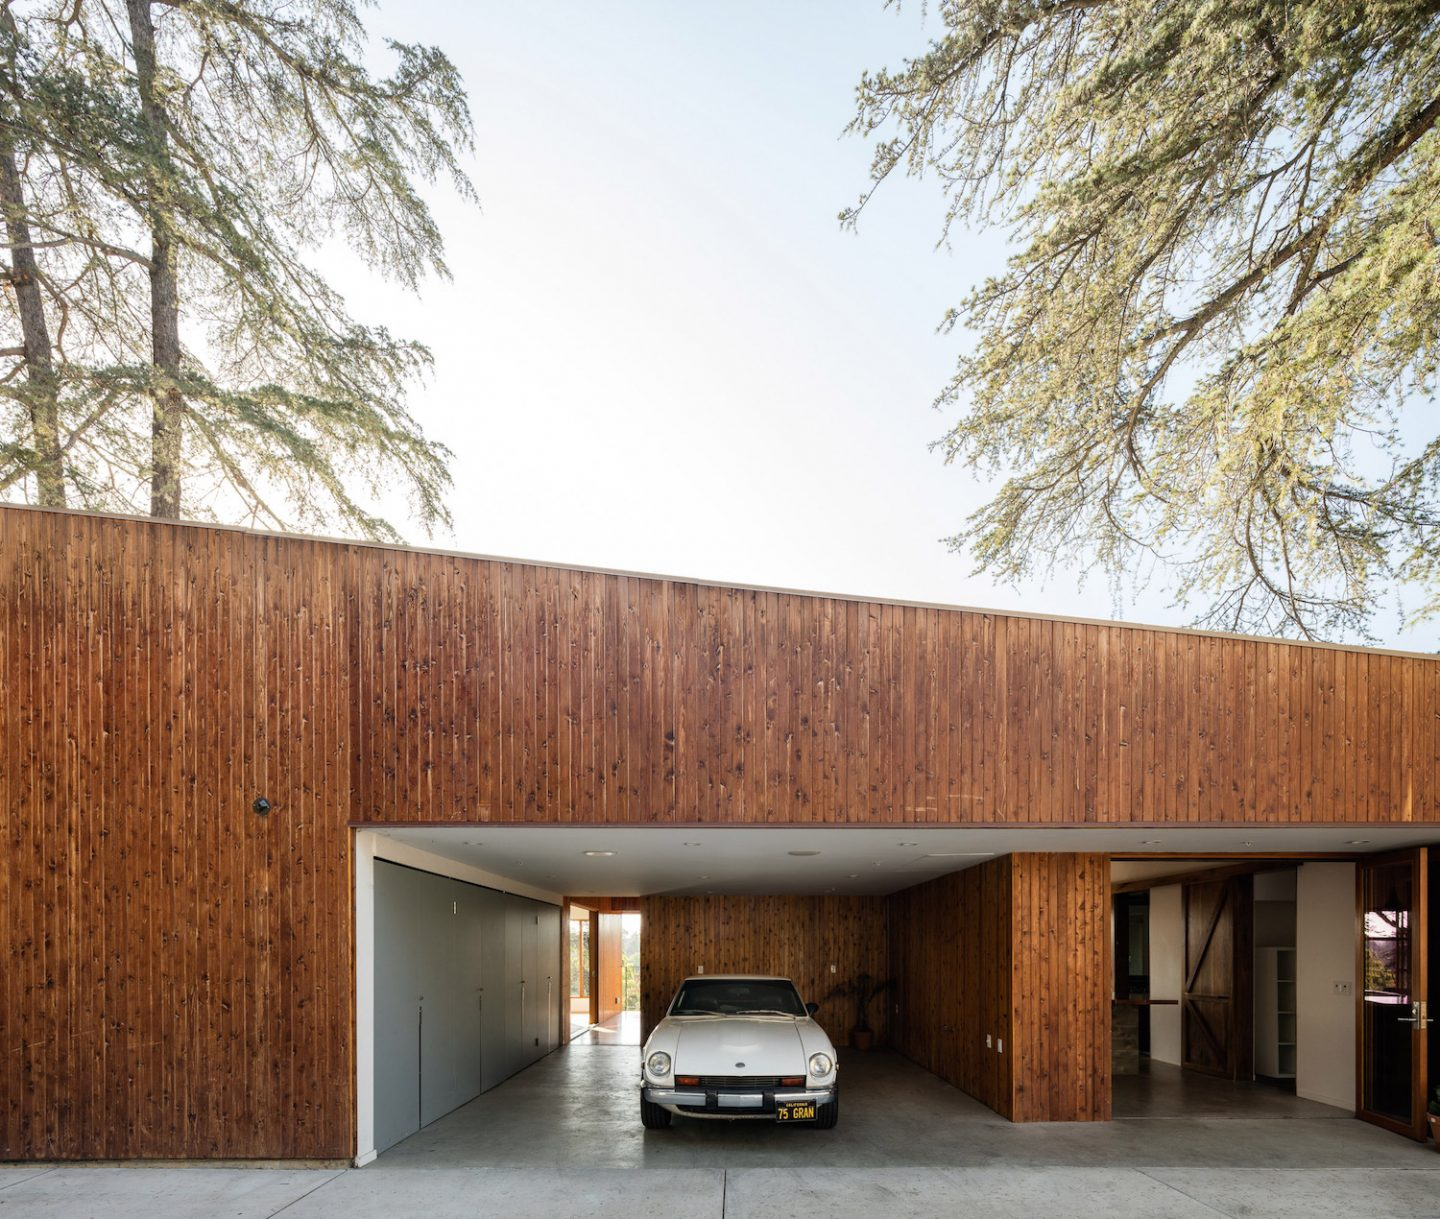 architecture_houseintrees_anonymousarchitects_2